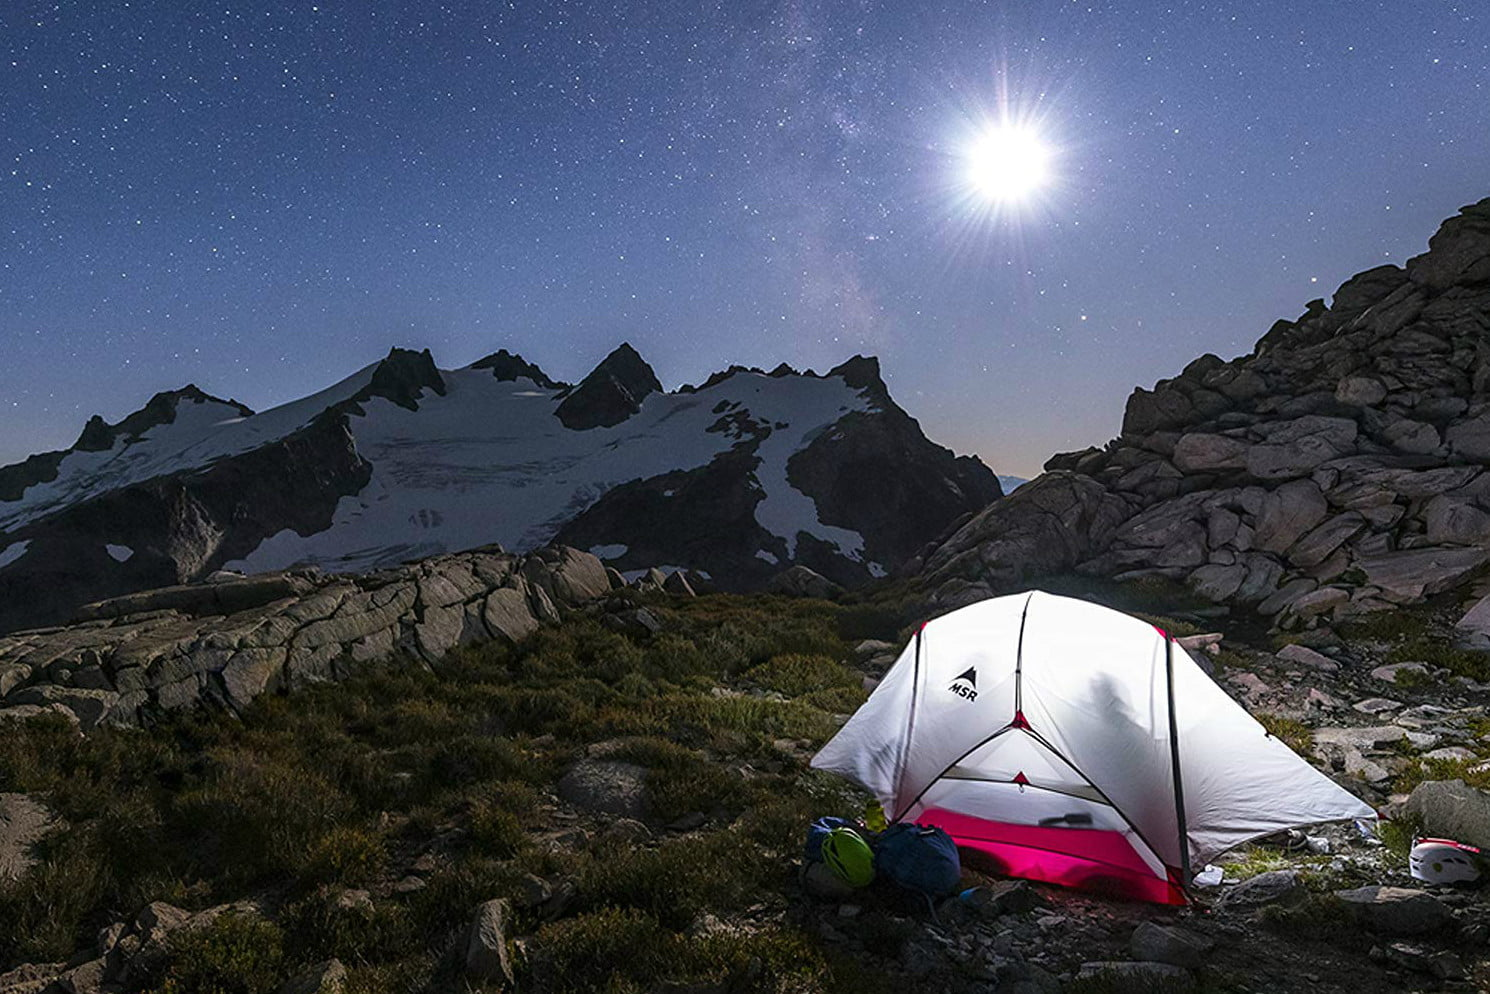 Amazon hacks the price of the MSR Hubba Hubba NX backpacking tent to just $330